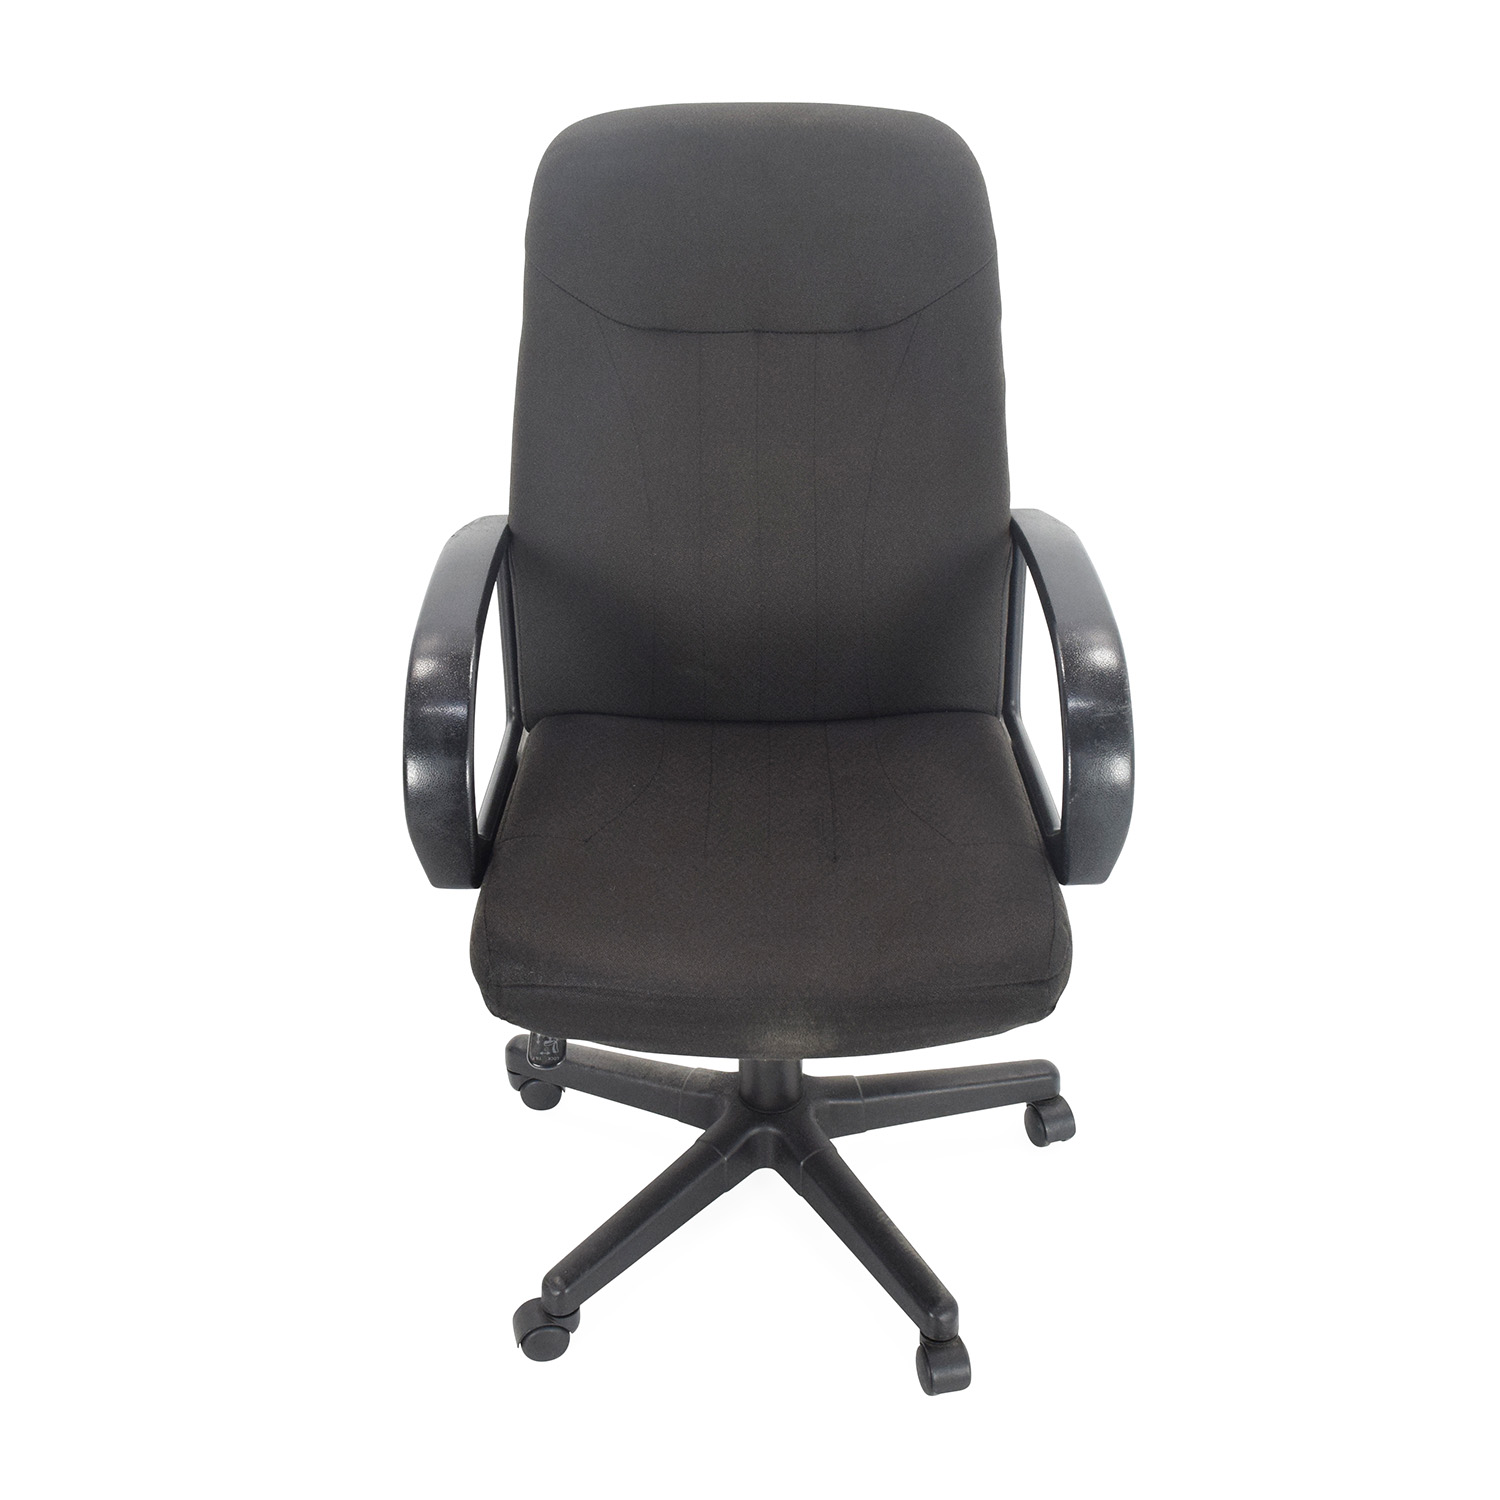 Best Comfy Office Chair Comfy Computer Chair The Top Comfy Desk Chair Home Ideas